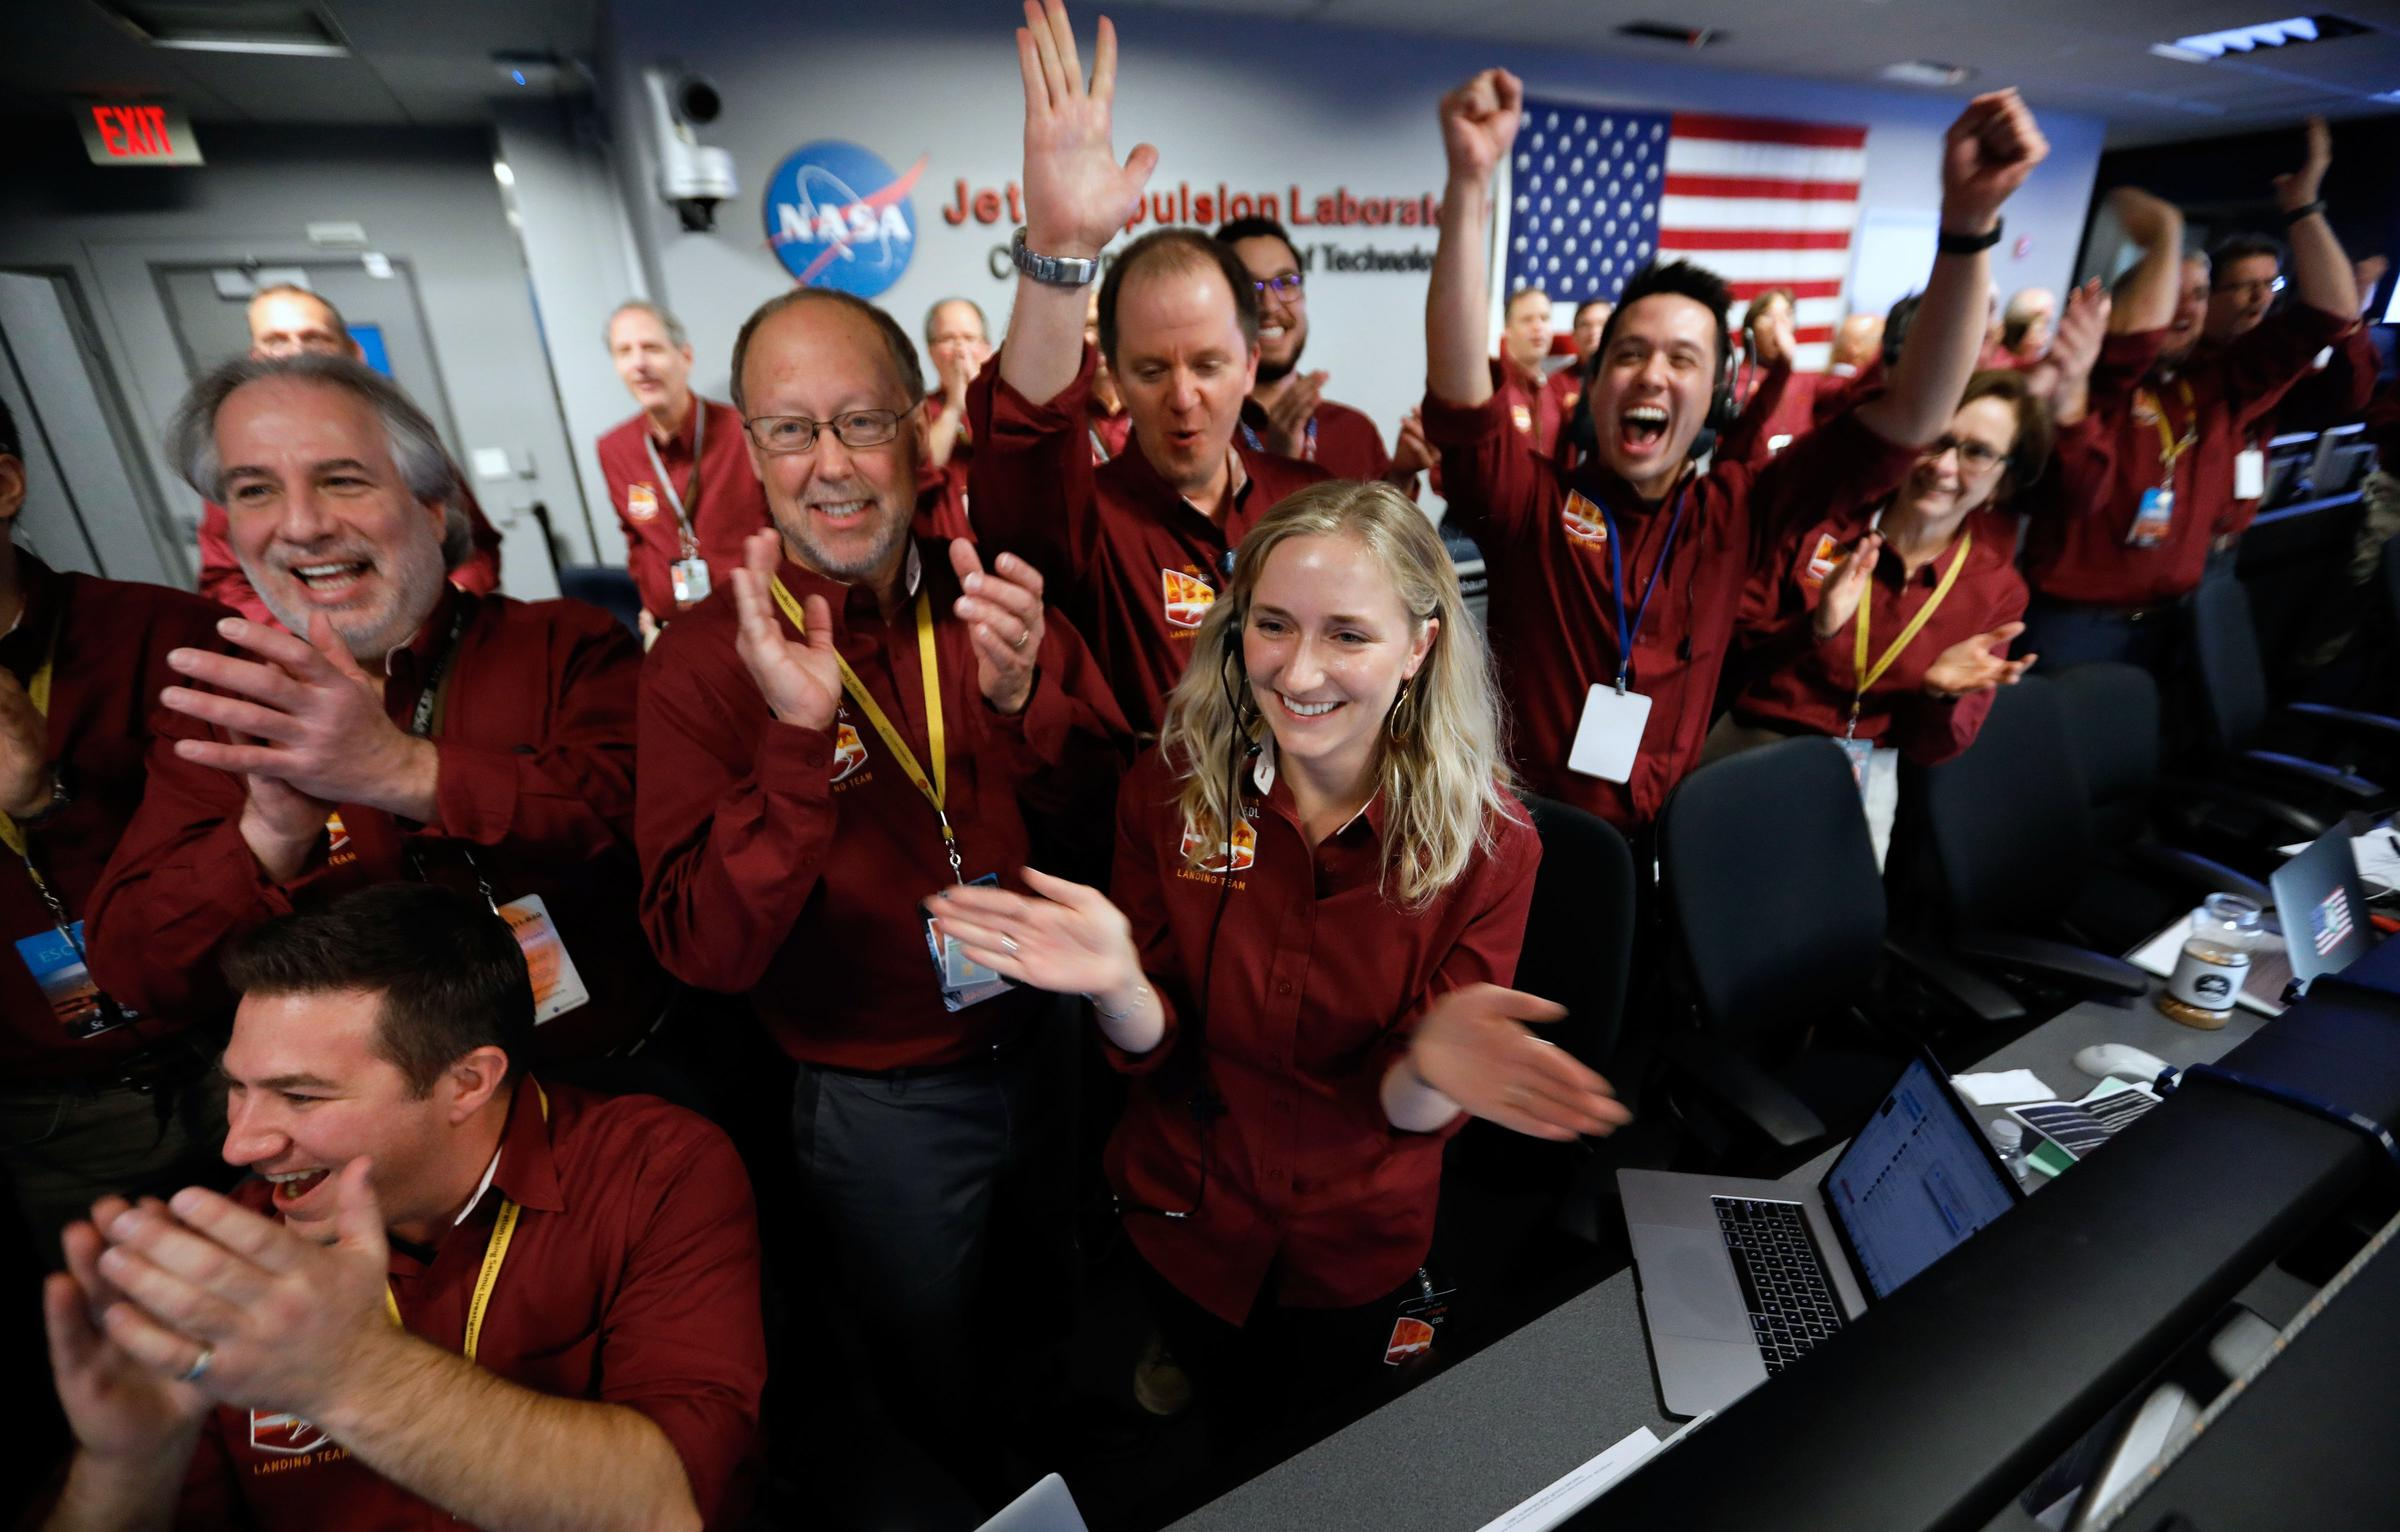 NASA engineers on the flight team celebrate the In Sight spacecraft's successful landing on Mars at the NASA Jet Propulsion Laboratory in Pasadena Calif. on Monday